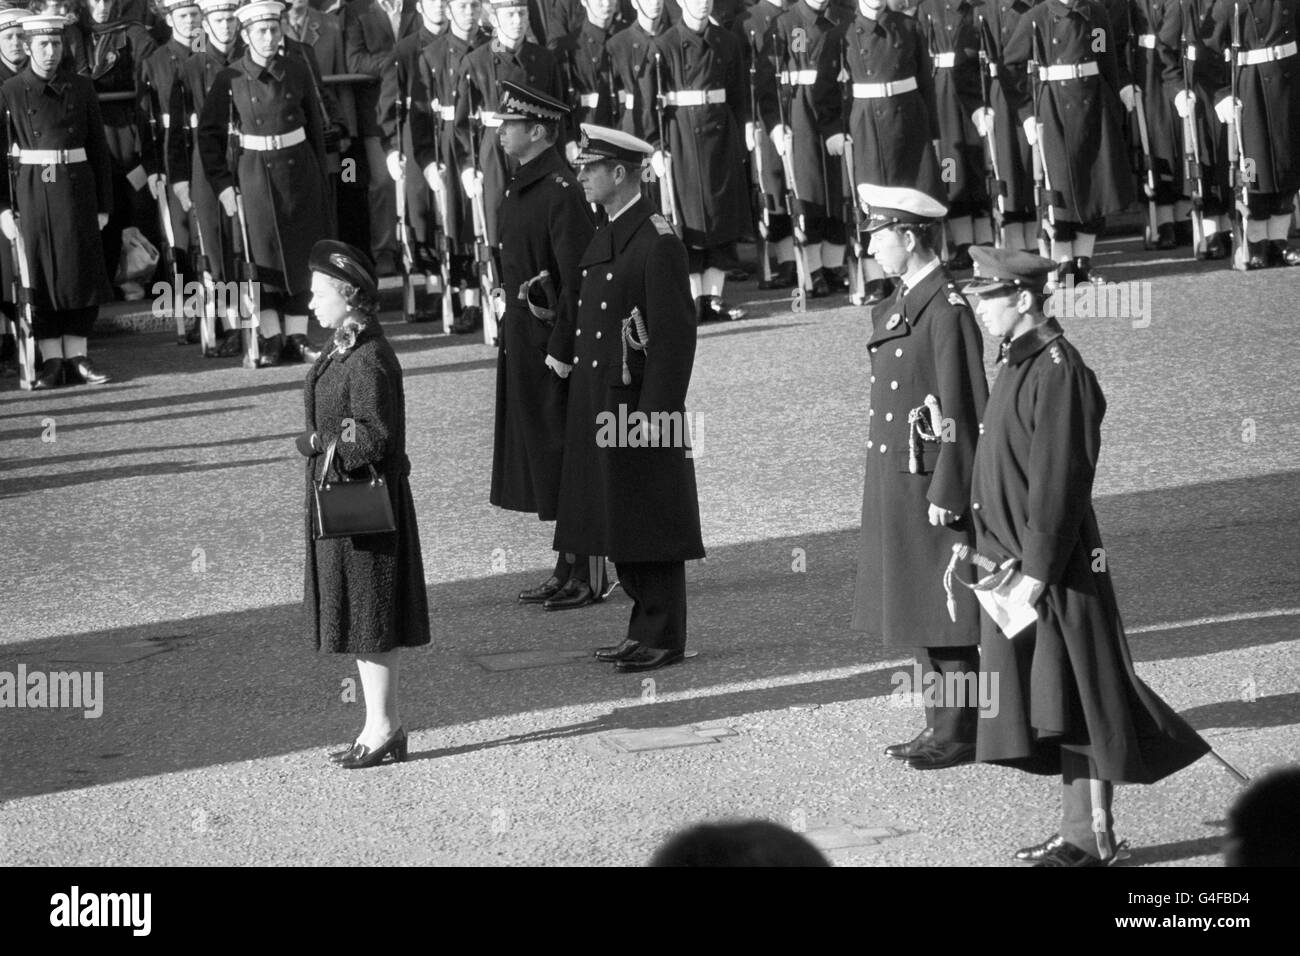 Royalty - Royal Family - Remembrance Day - Cenotaph, London - Stock Image